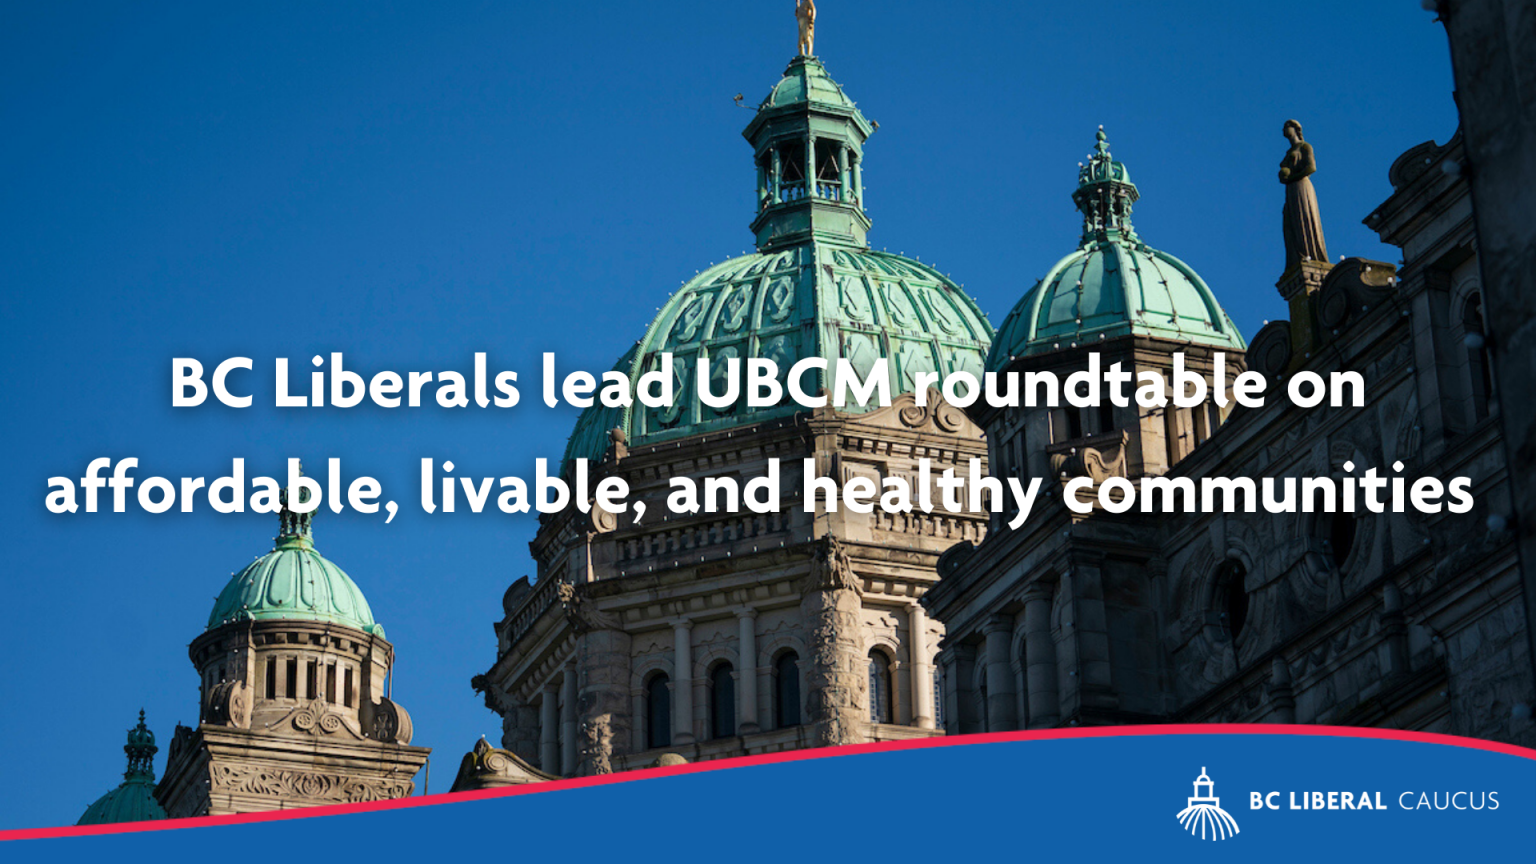 BC Liberals lead UBCM roundtable on affordable, livable, and healthy communities